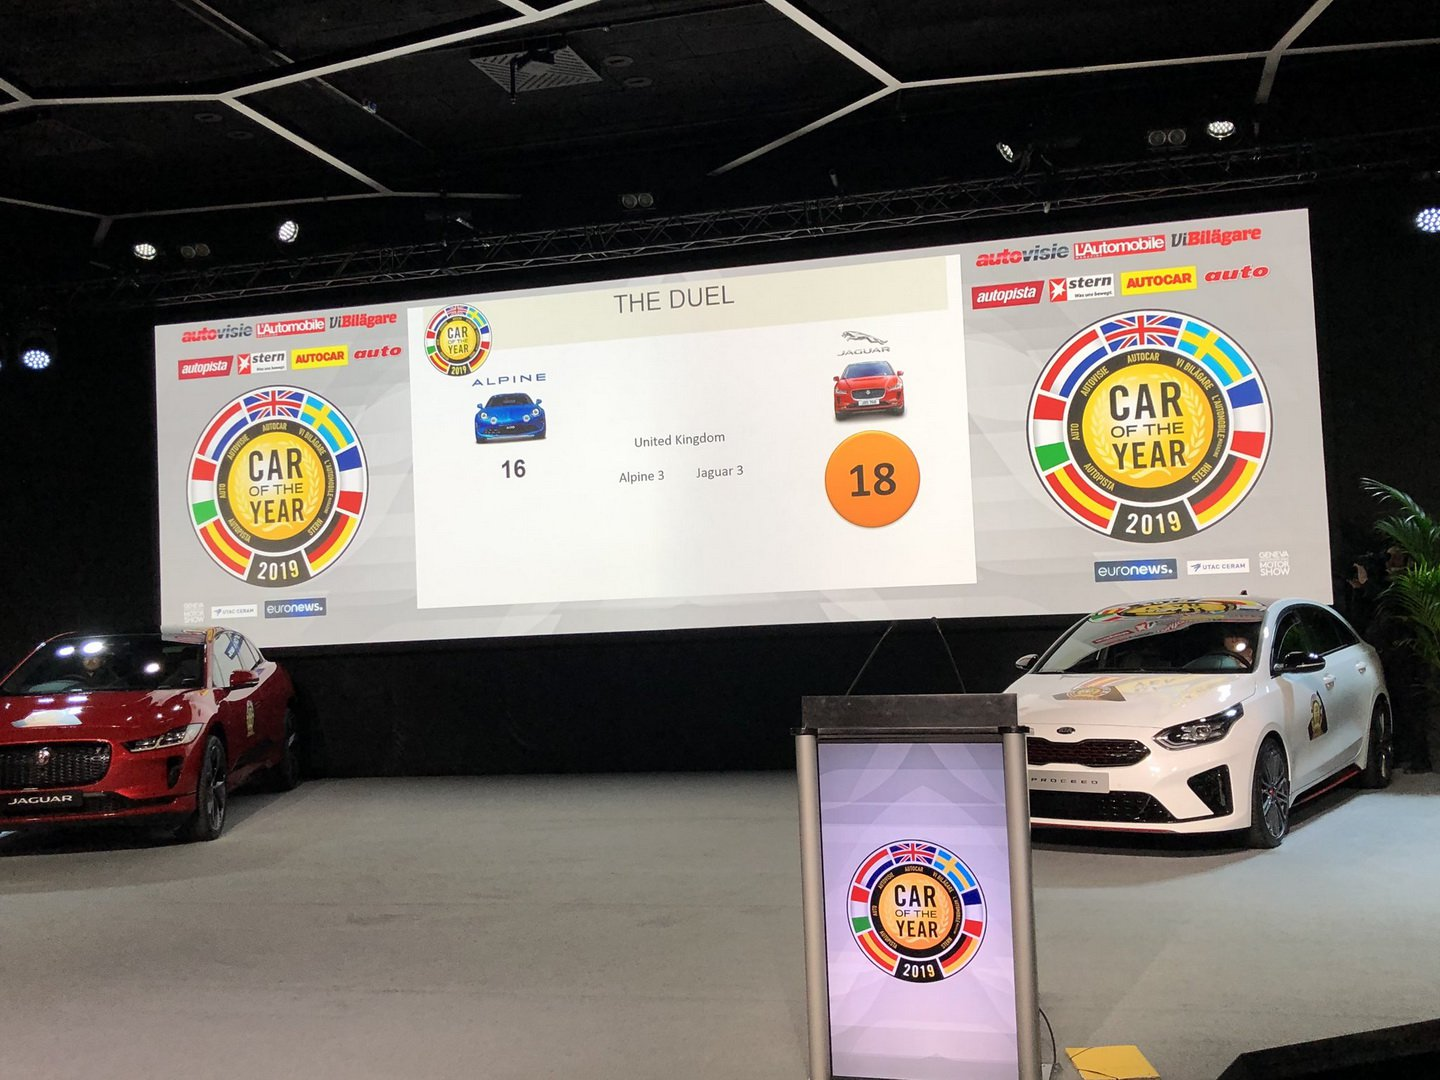 Car of the Year 2019, to…